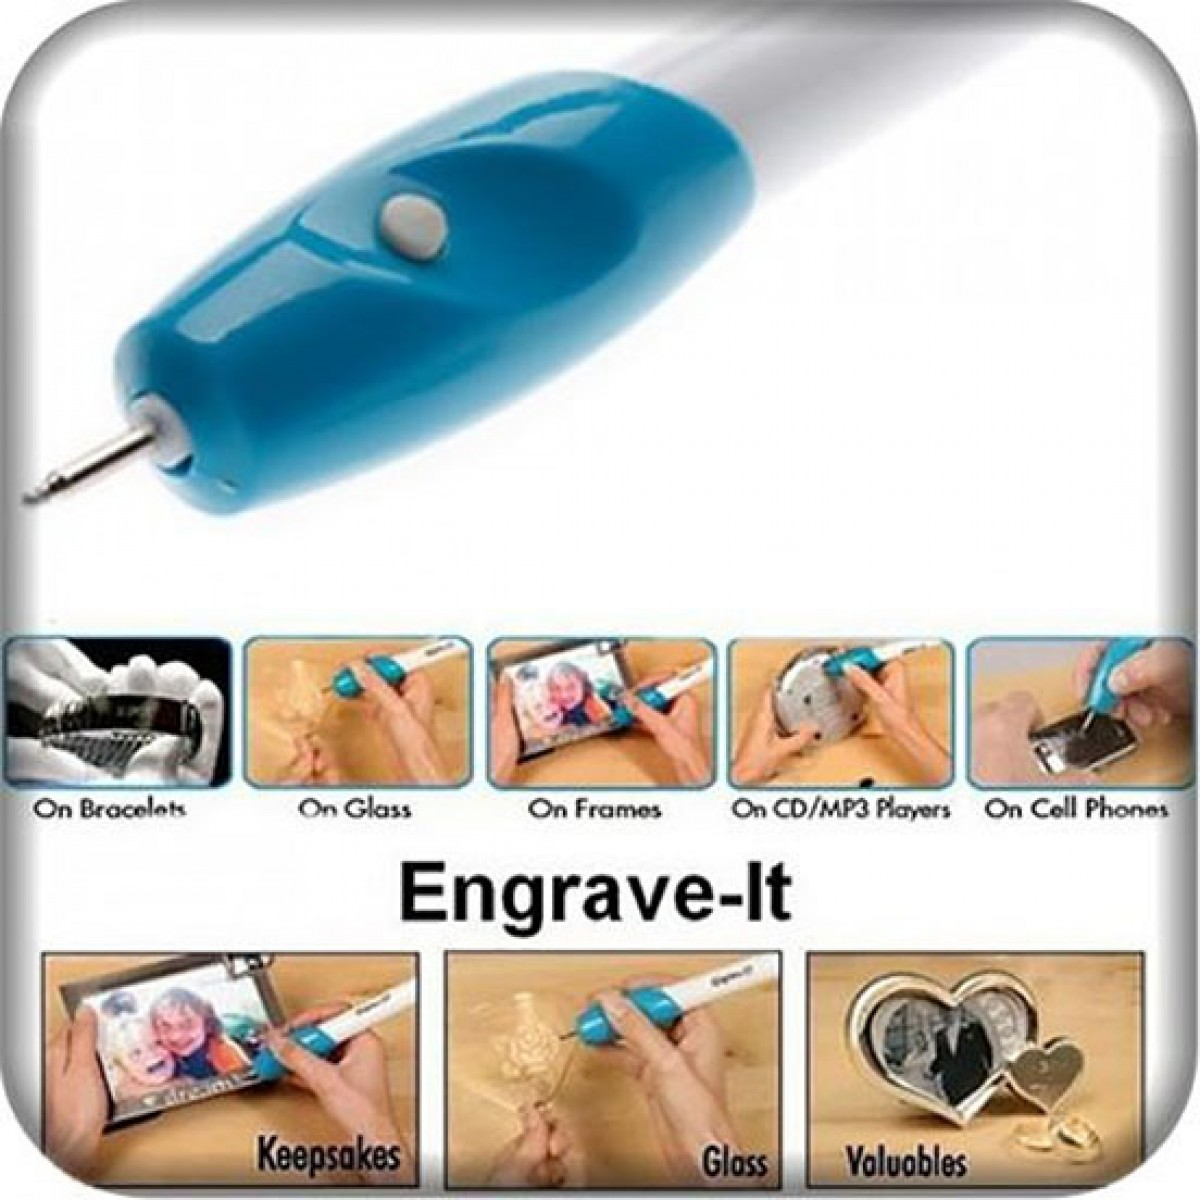 ENGRAVE-IT HANDHELD BATTERY OPERATED ENGRAVING PEN